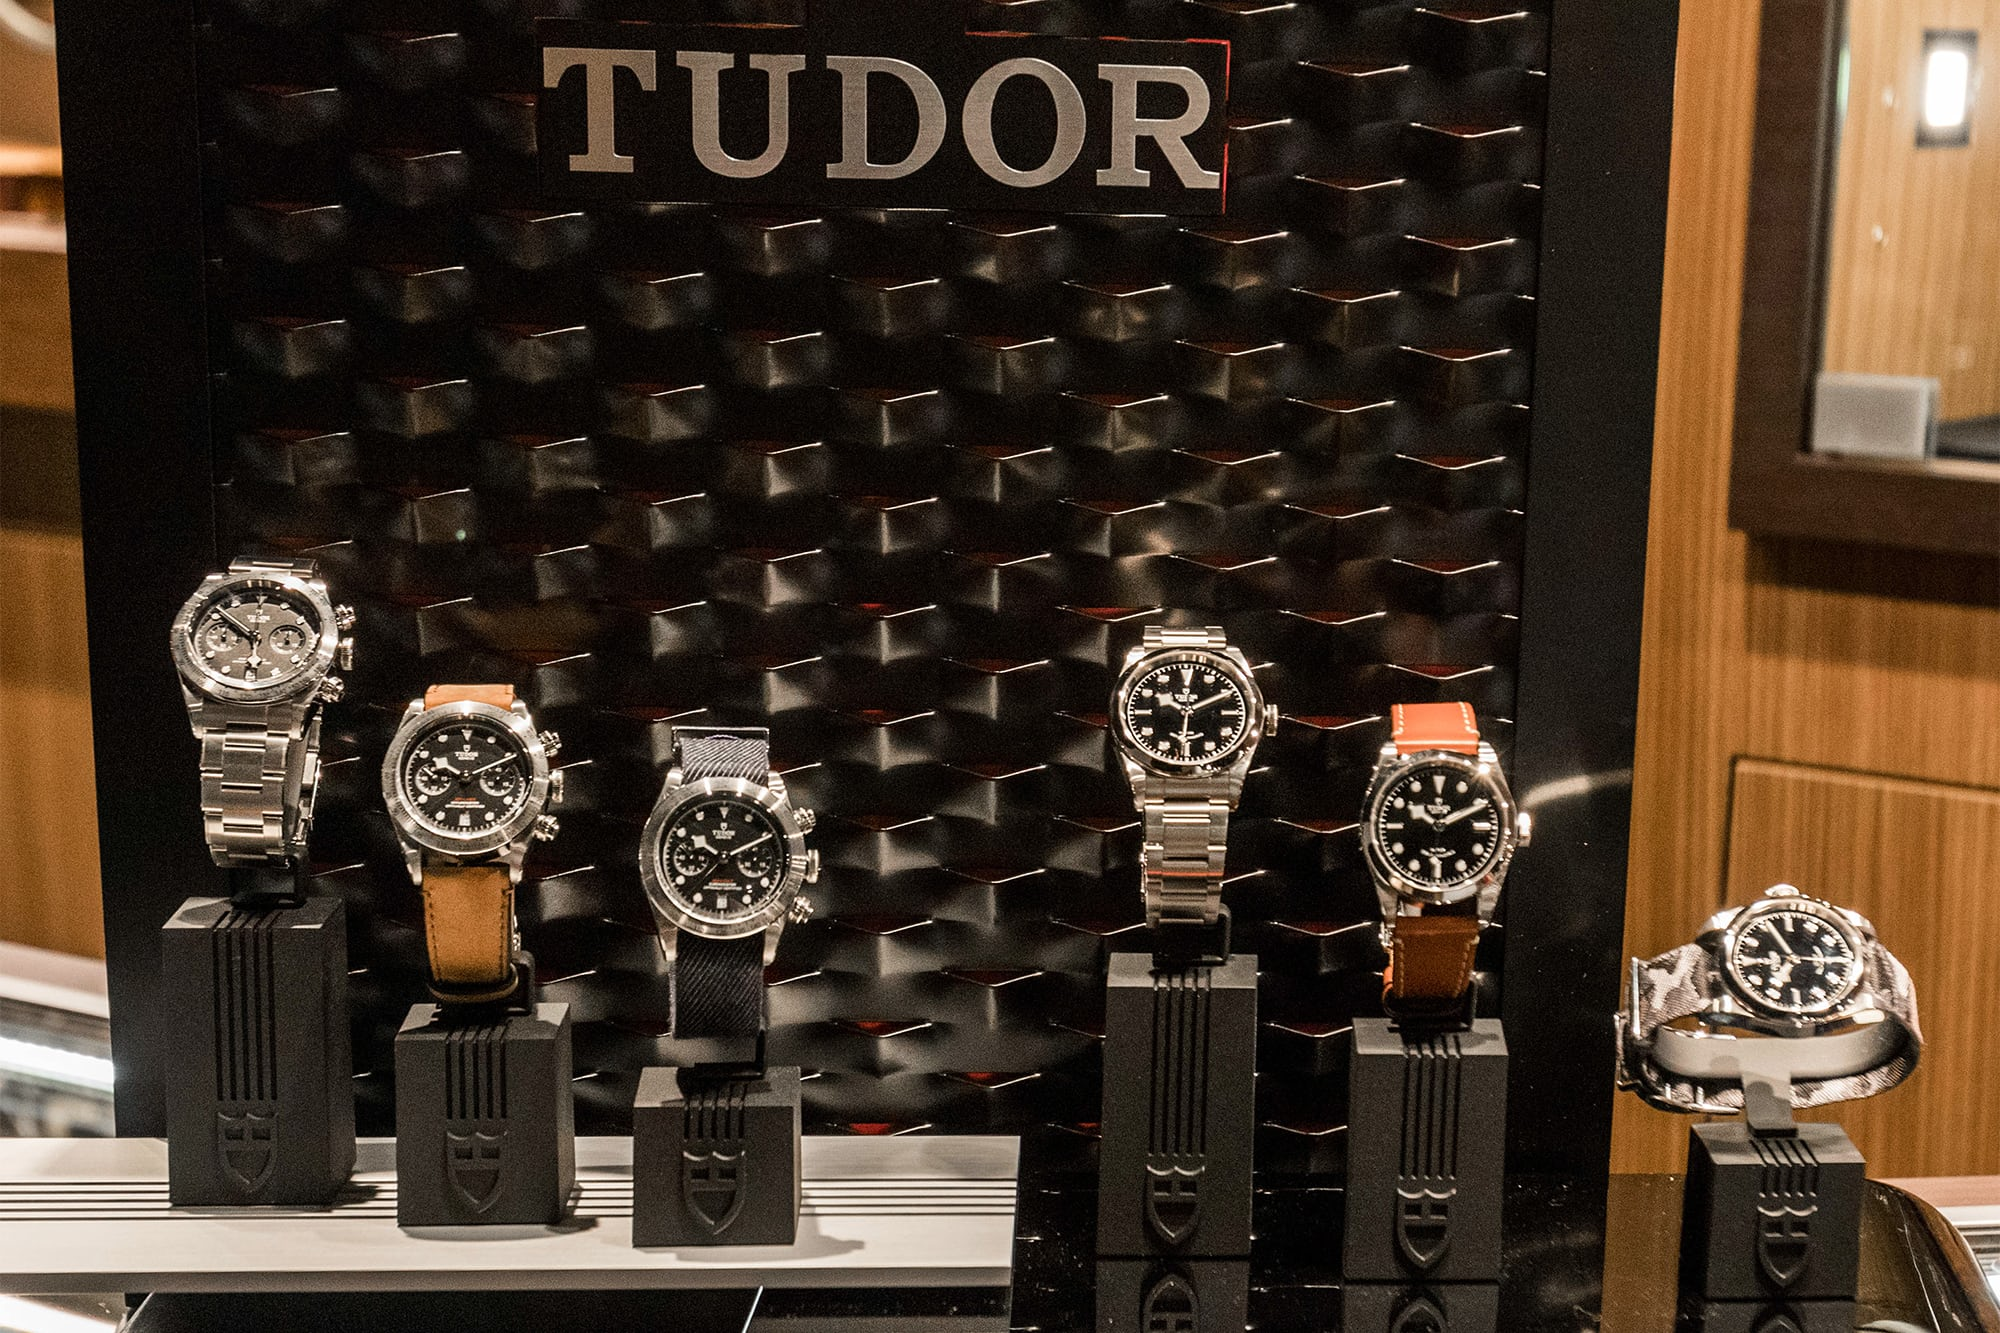 Photo Report: The Tudor Baselworld Novelties At Swiss Fine Timing In Chicago Photo Report: The Tudor Baselworld Novelties At Swiss Fine Timing In Chicago  Watches only 2